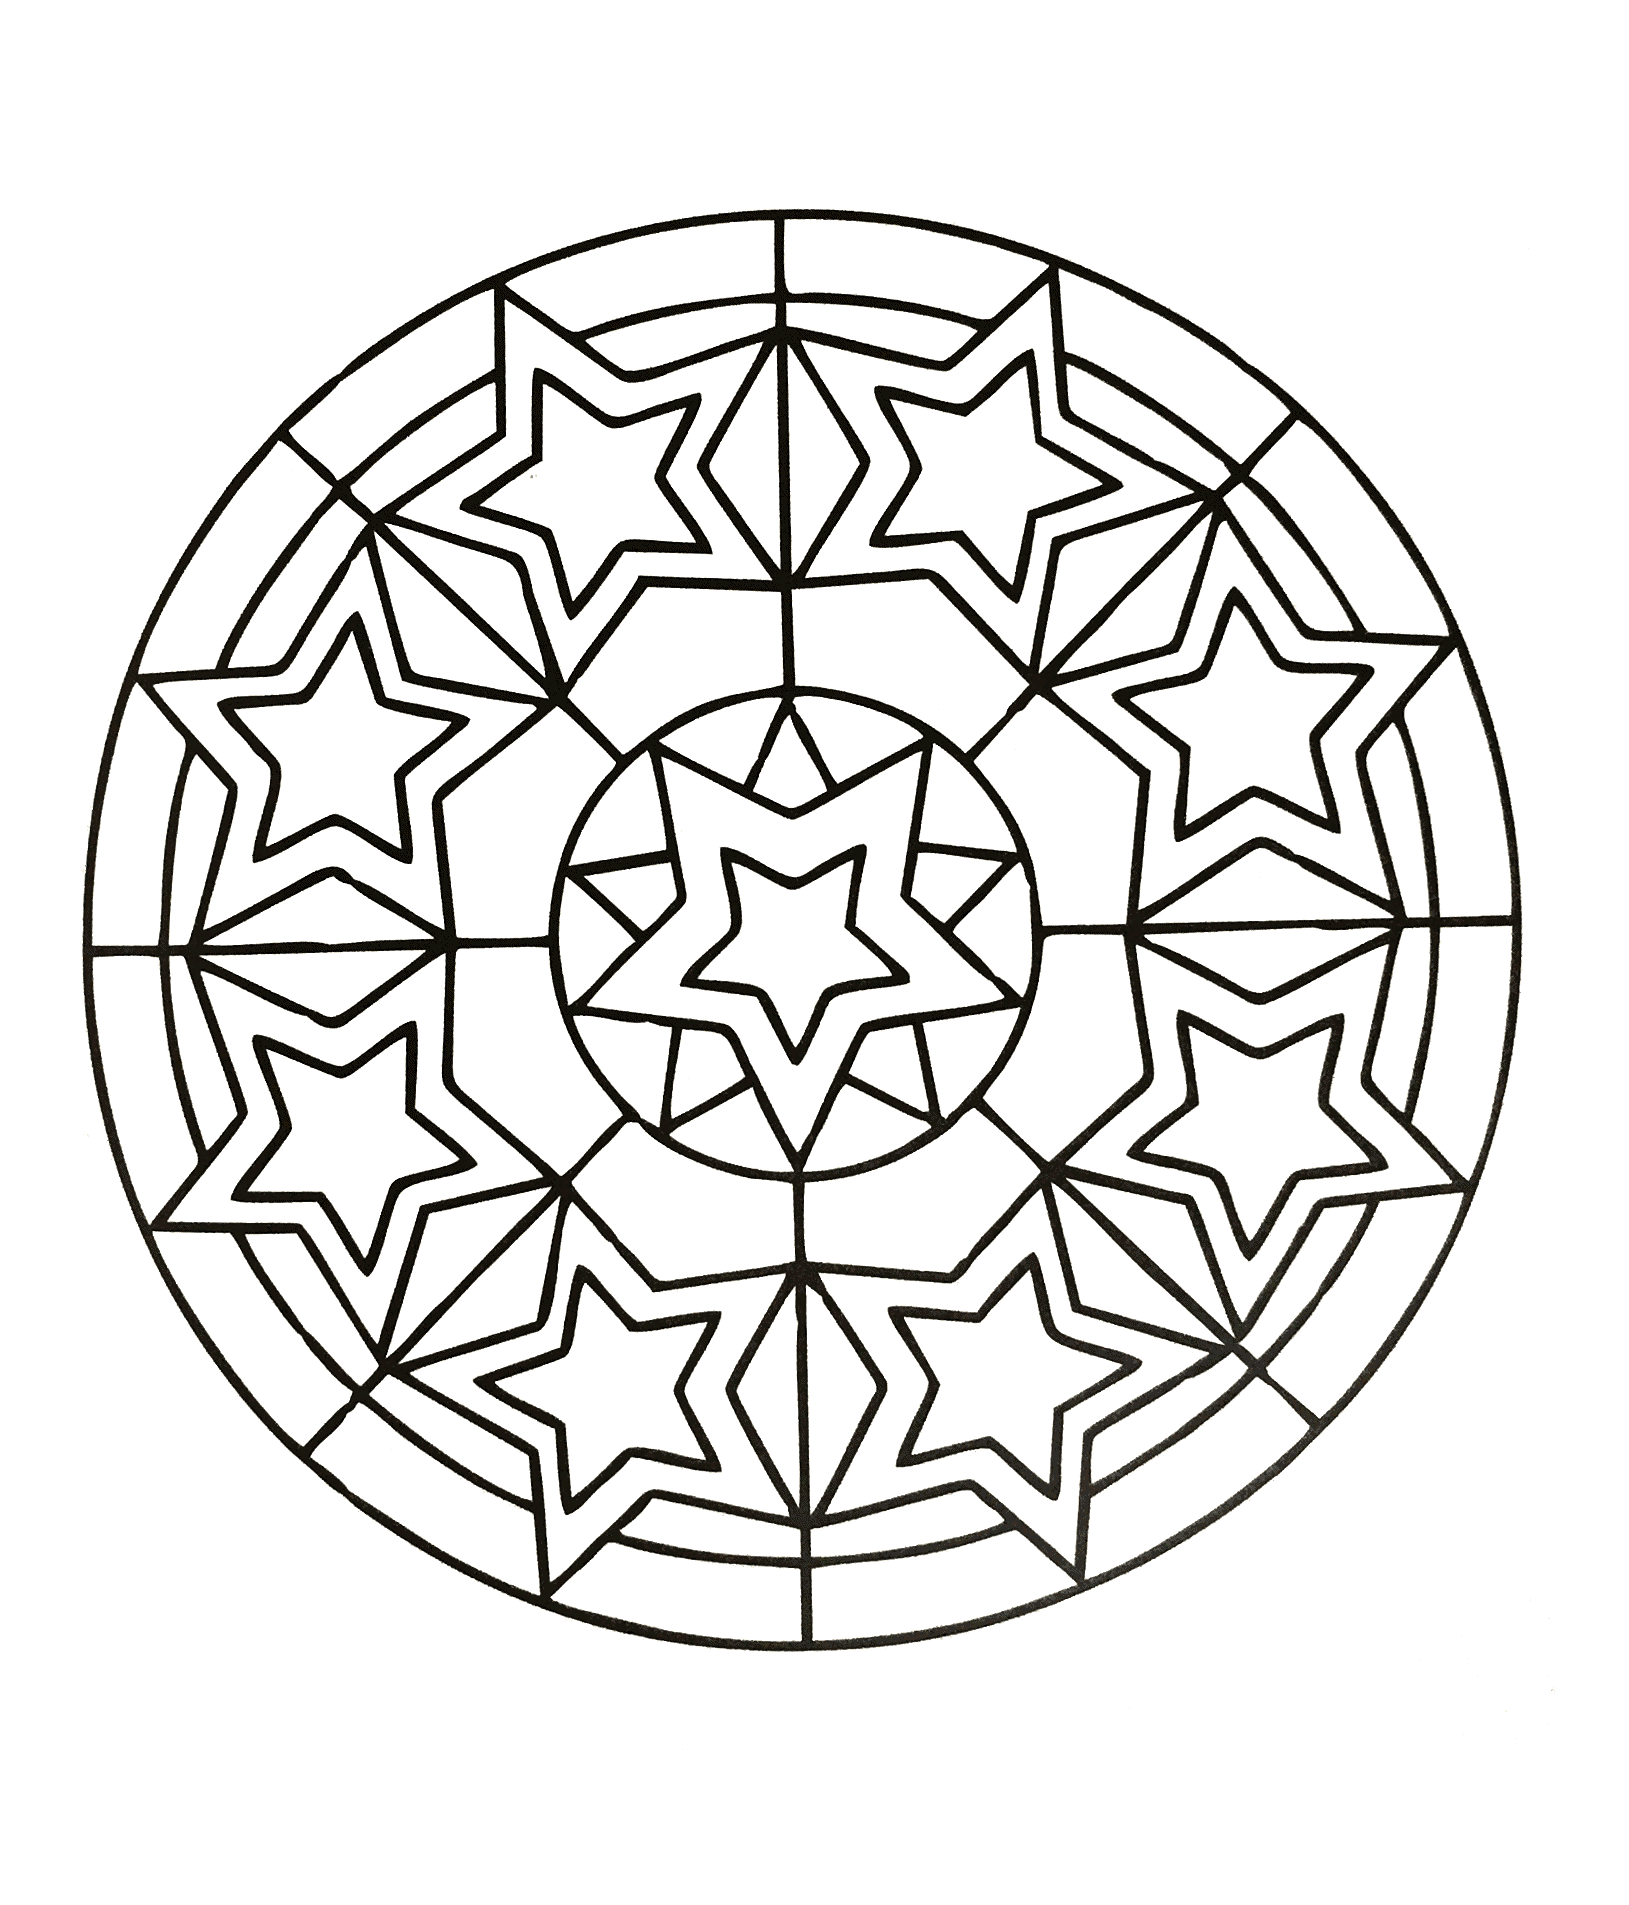 coloring pages for kids simple mandala 78 print - Simple Mandala Coloring Pages